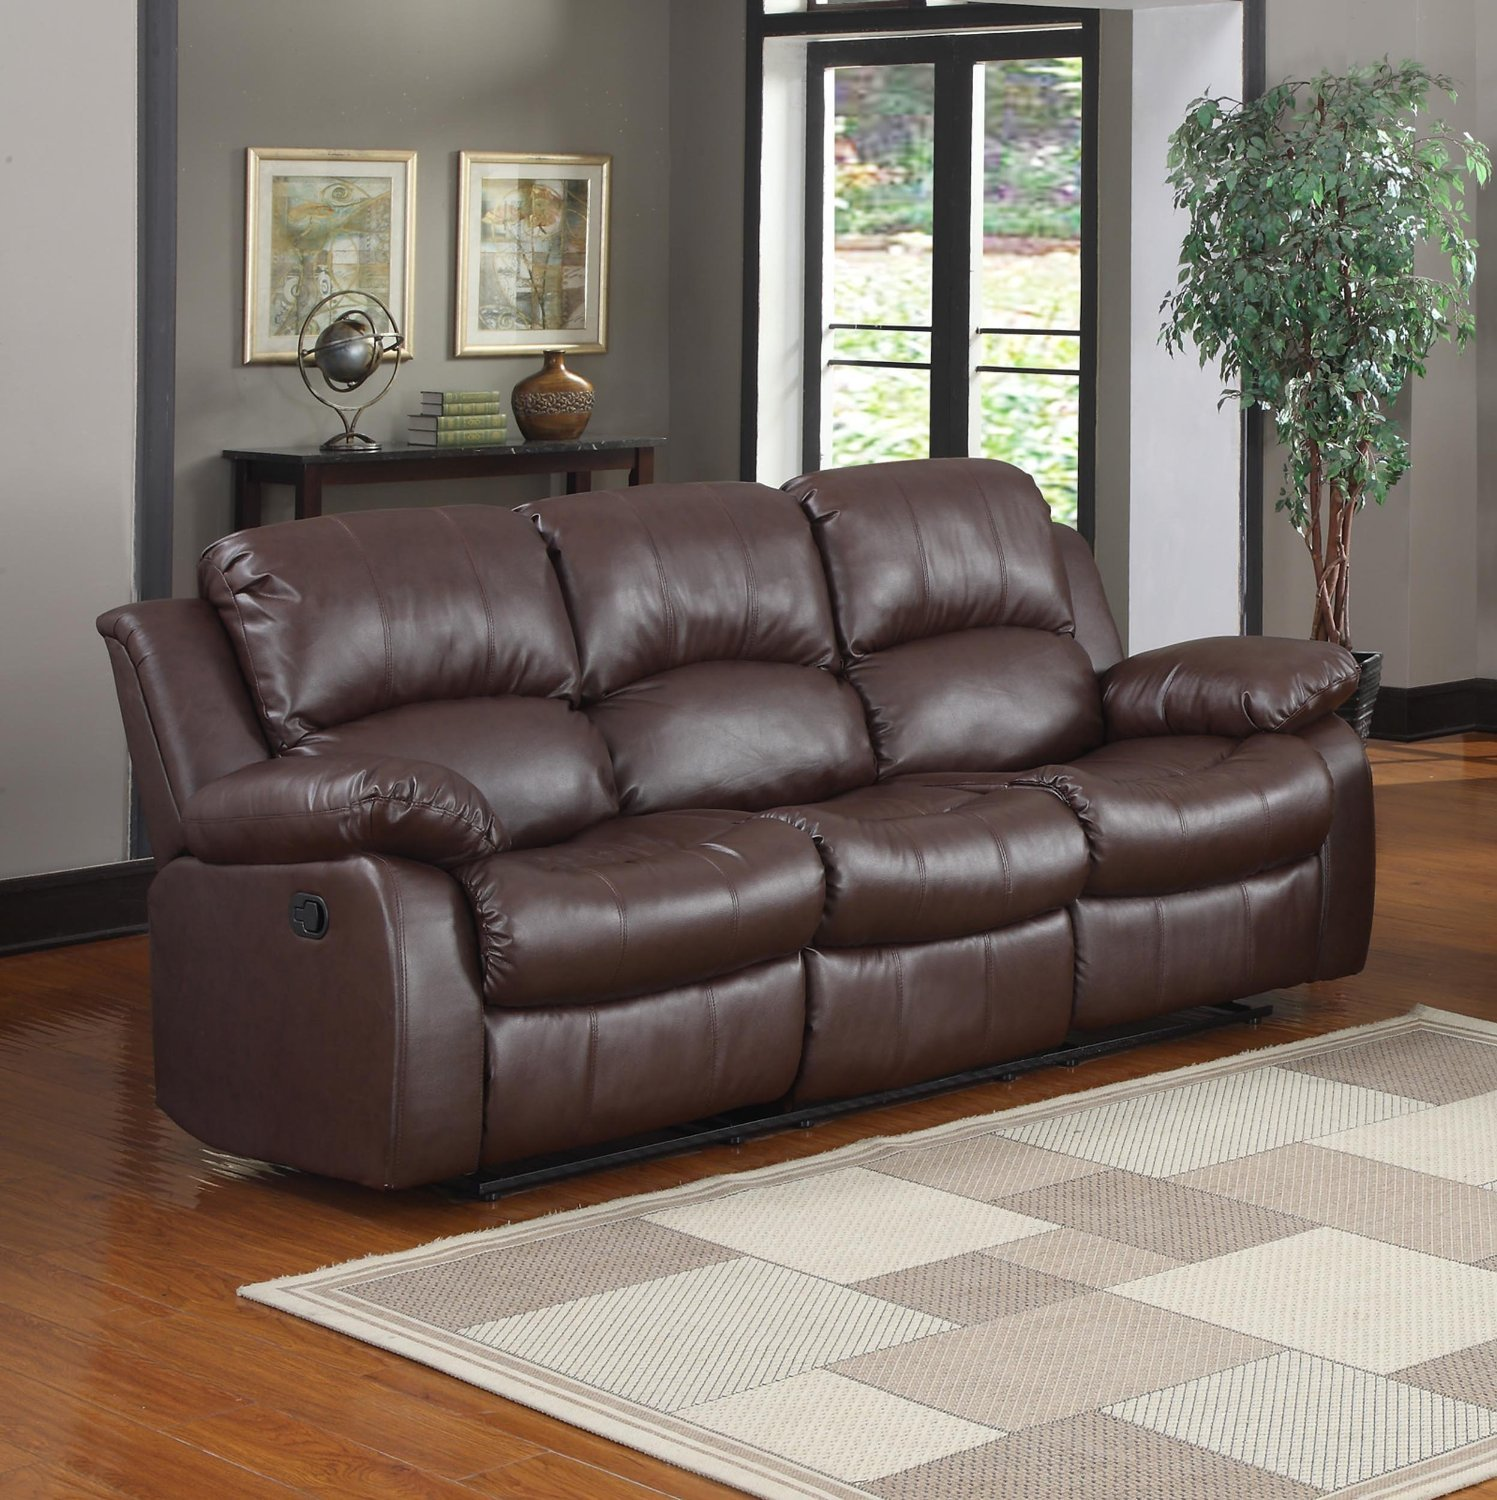 Bonded Leather Double Recliner Sofa Living Room Reclining Couch (Brown) by Divano Roma Furniture